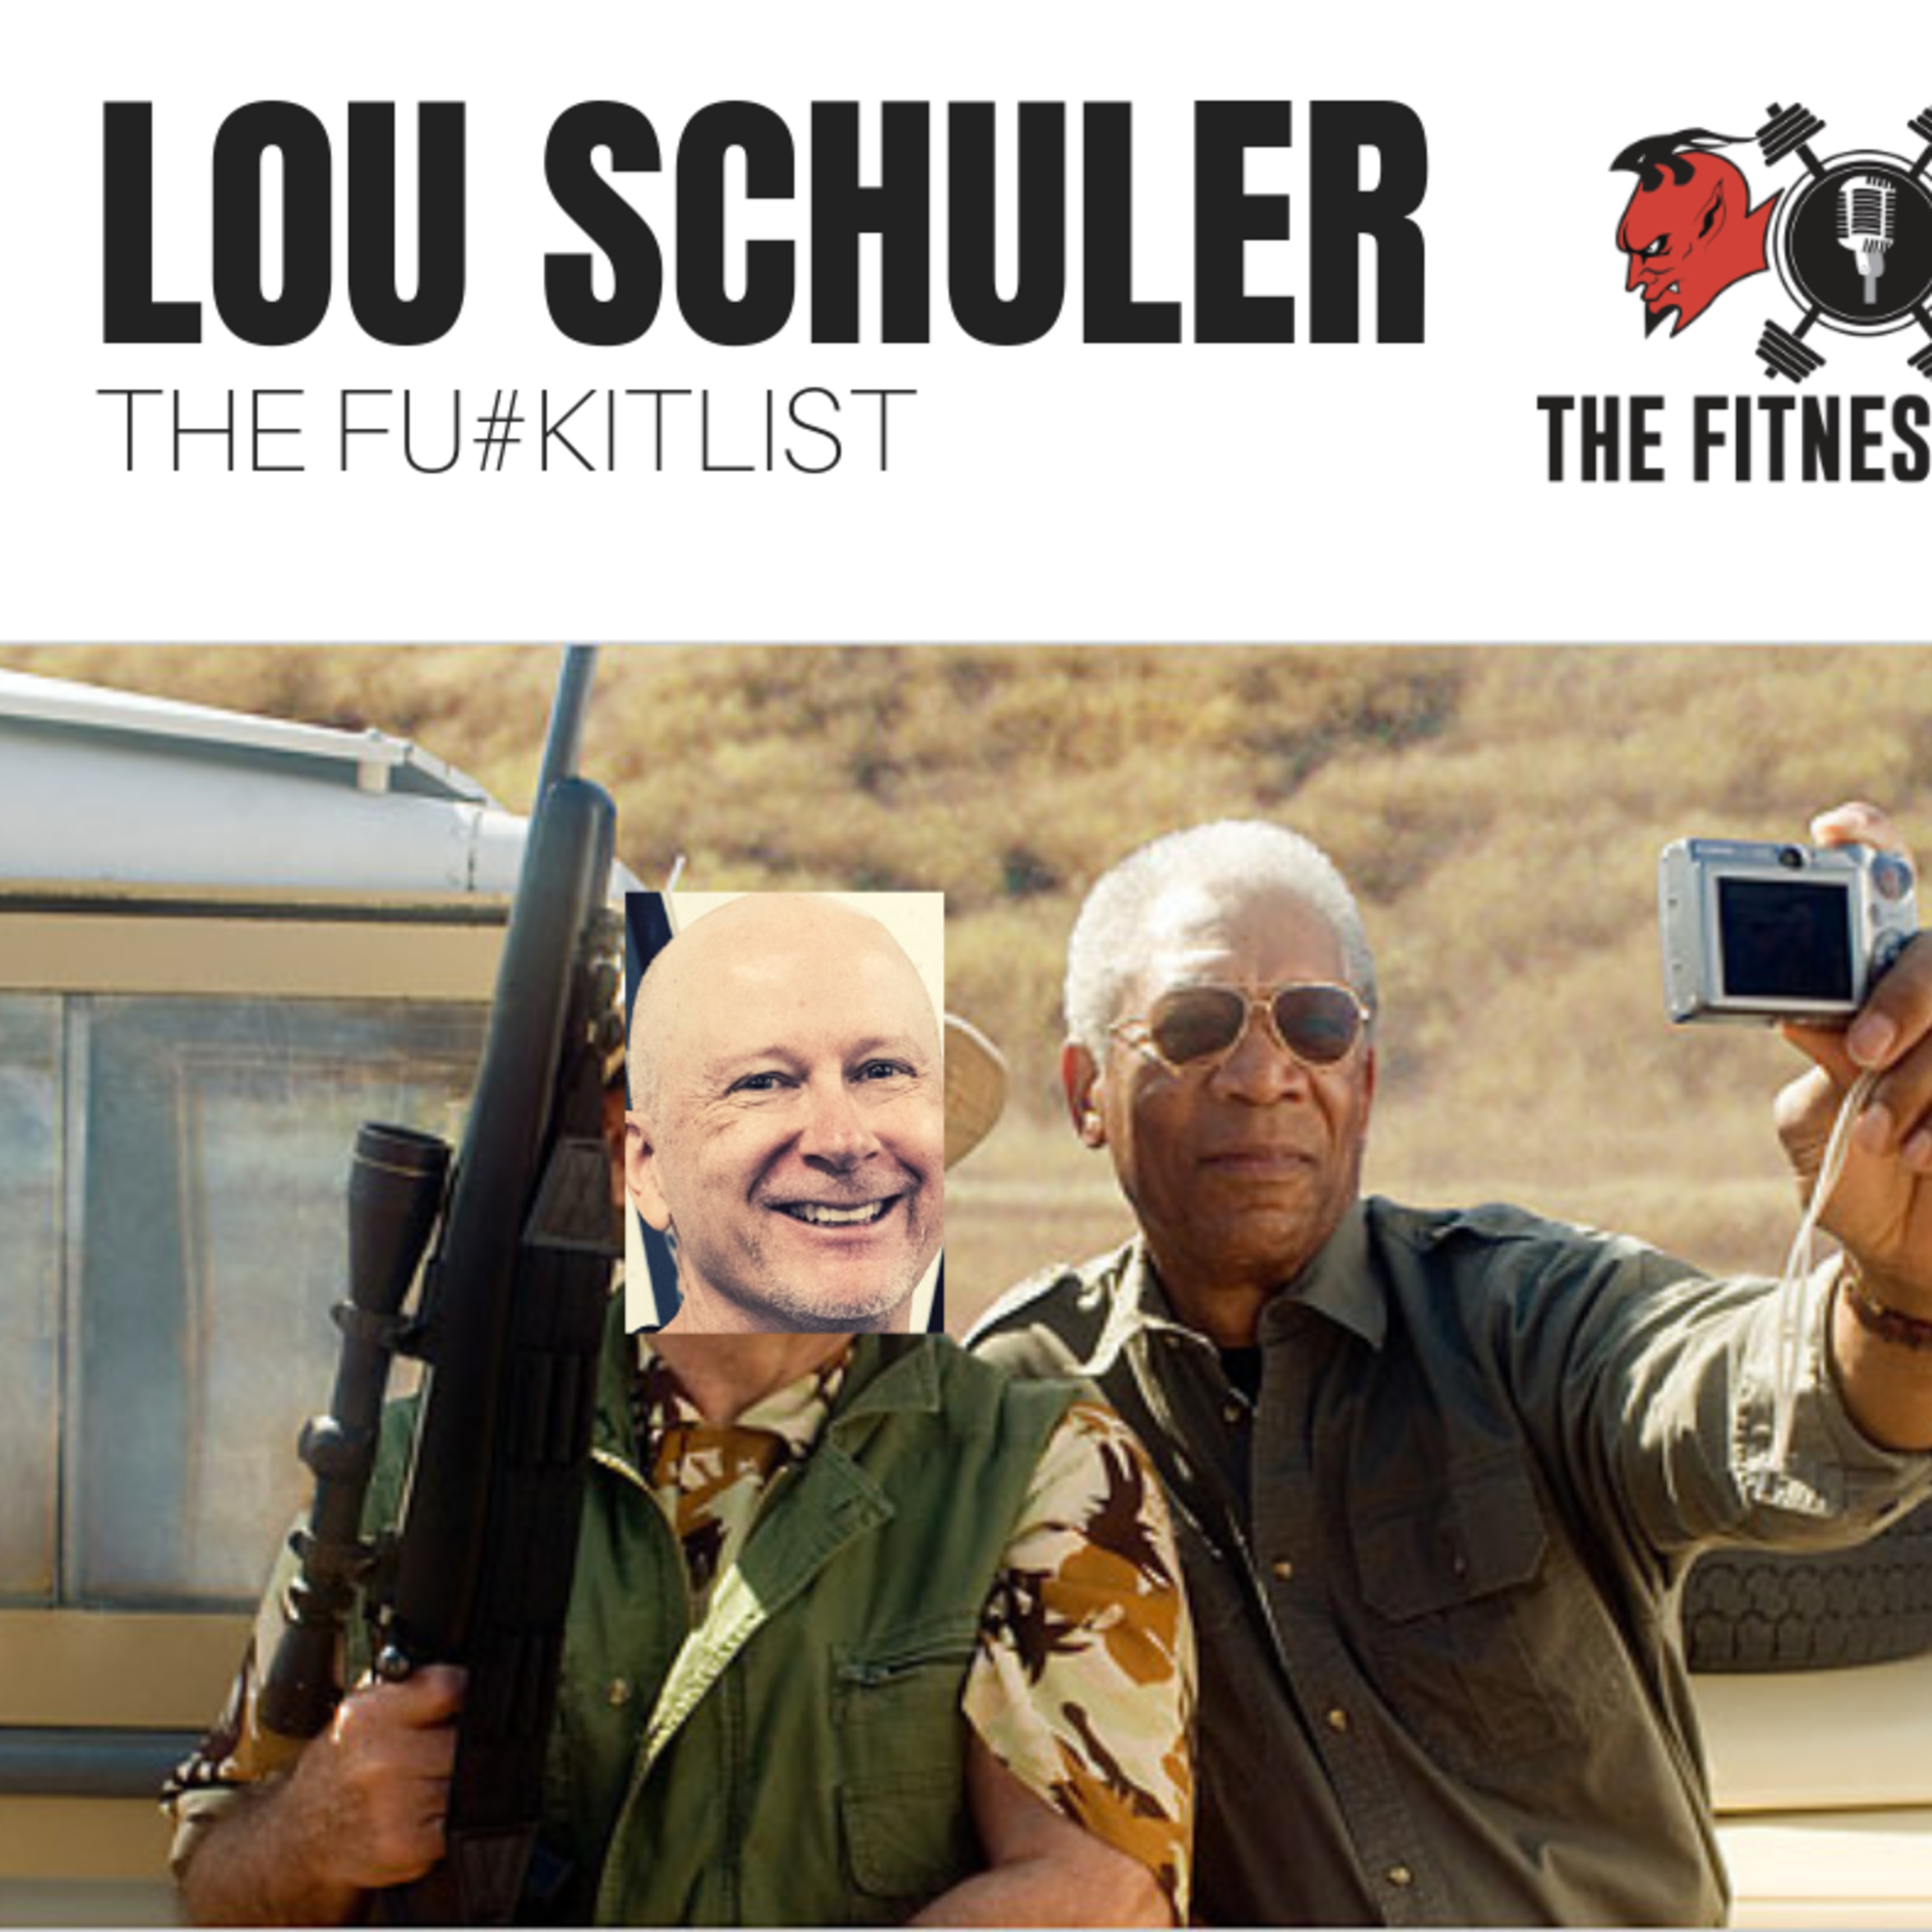 Lou Schuler EP 103: The F#ckit List